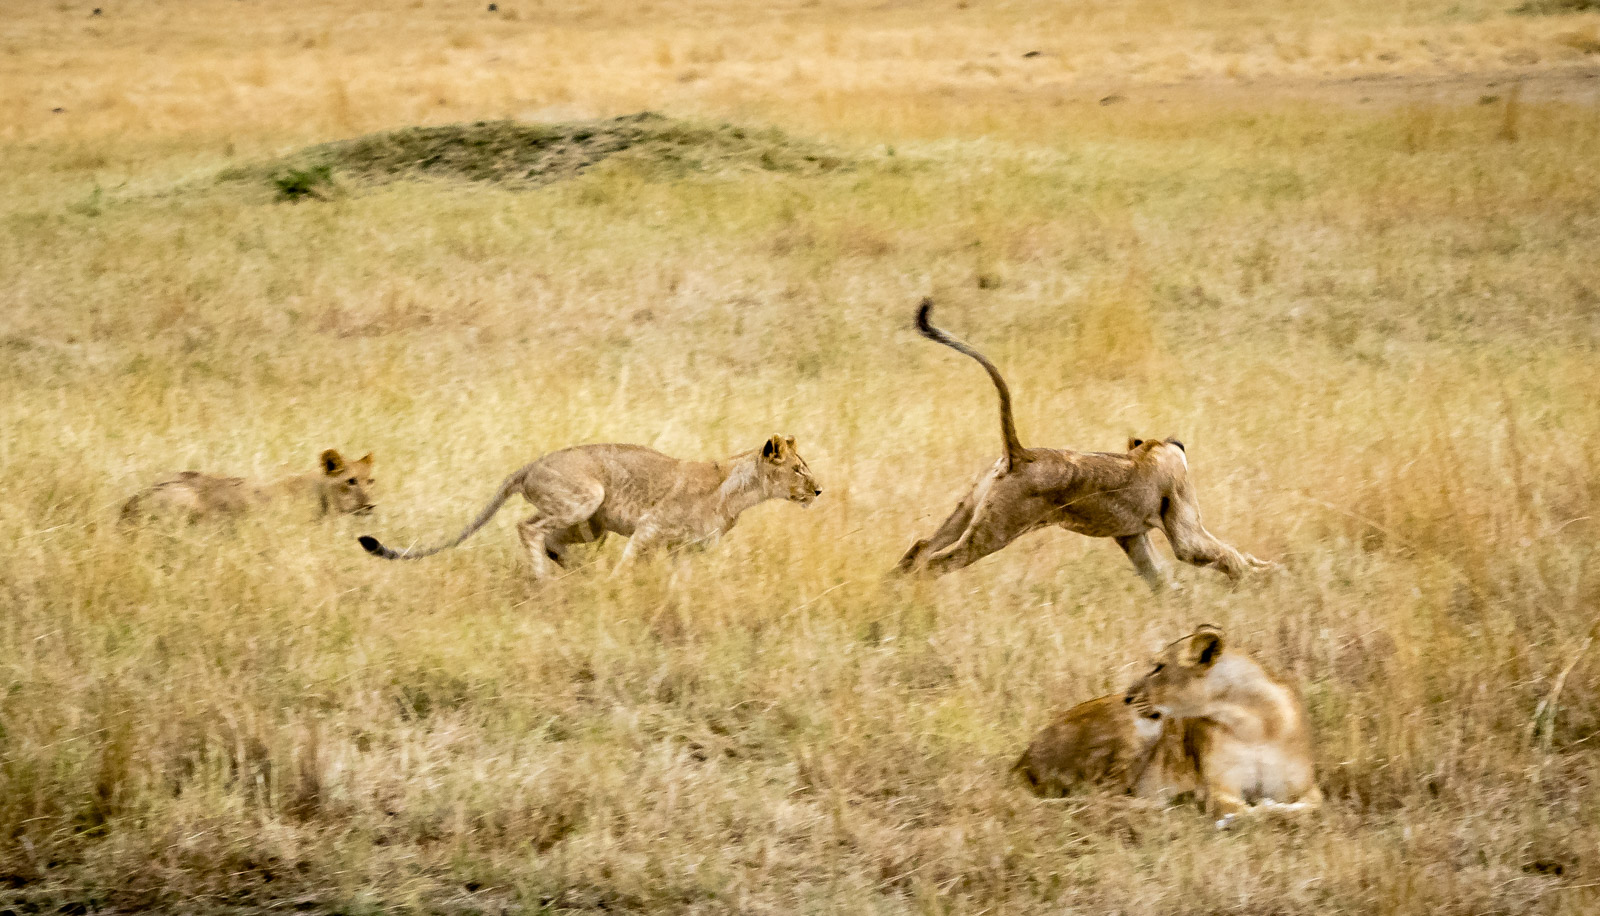 Young Lions Practicing the Hunt